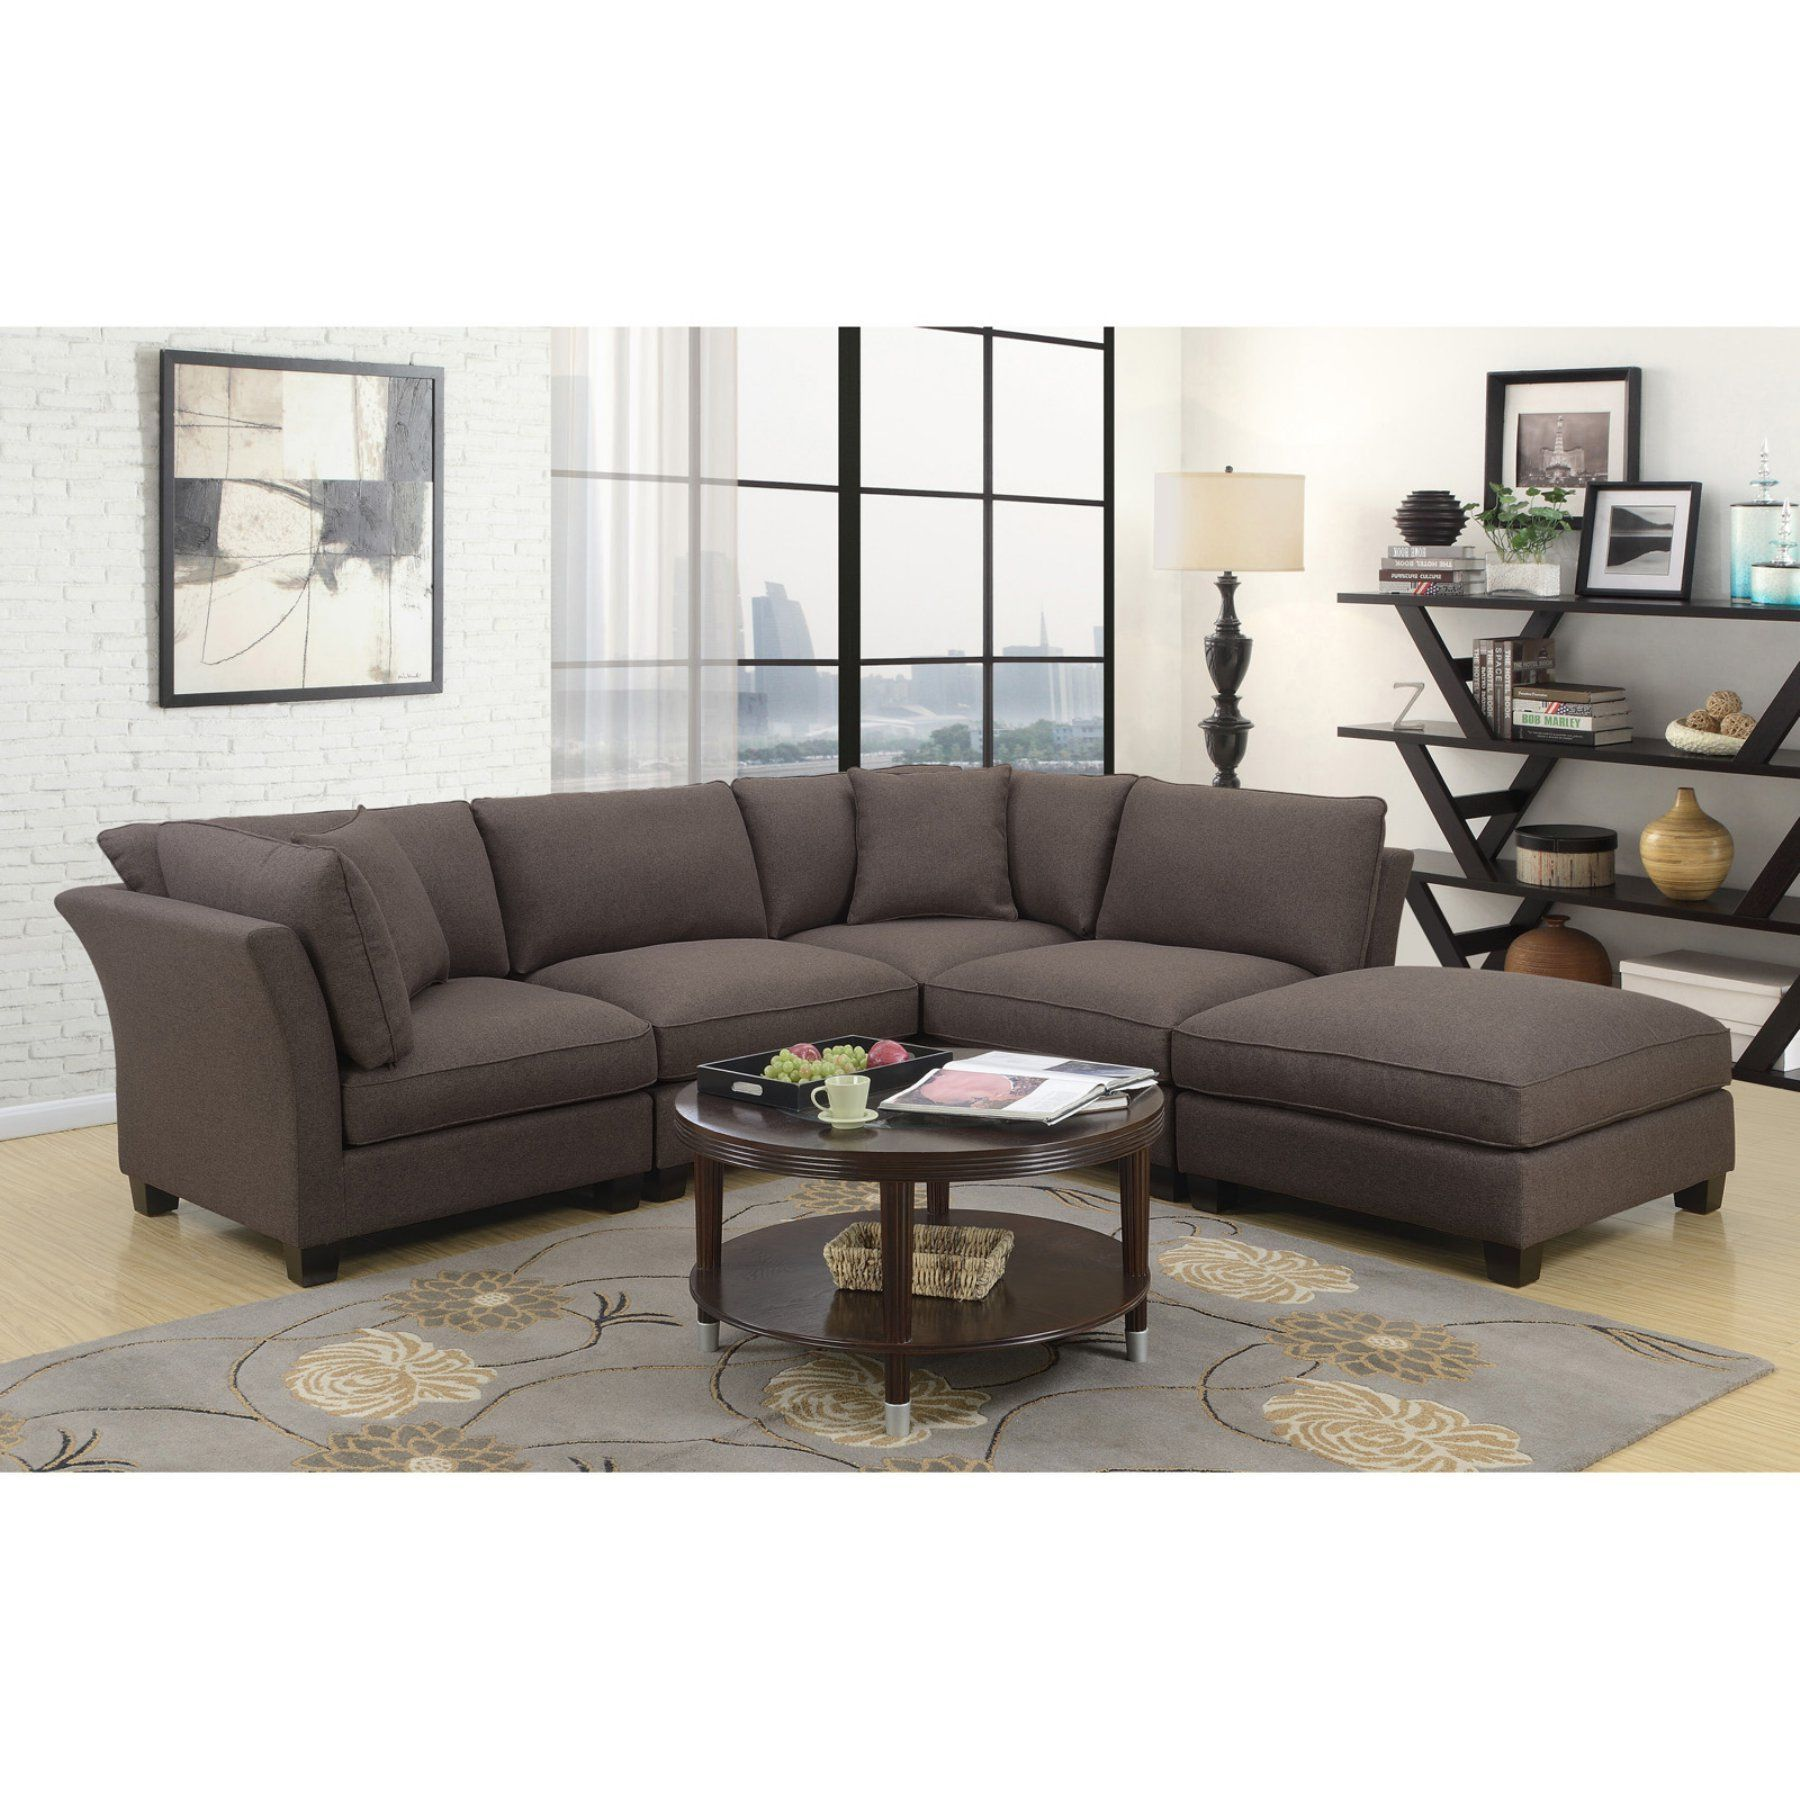 Best Emerald Home Arlington 5 Piece Sectional Sofa With 2 400 x 300